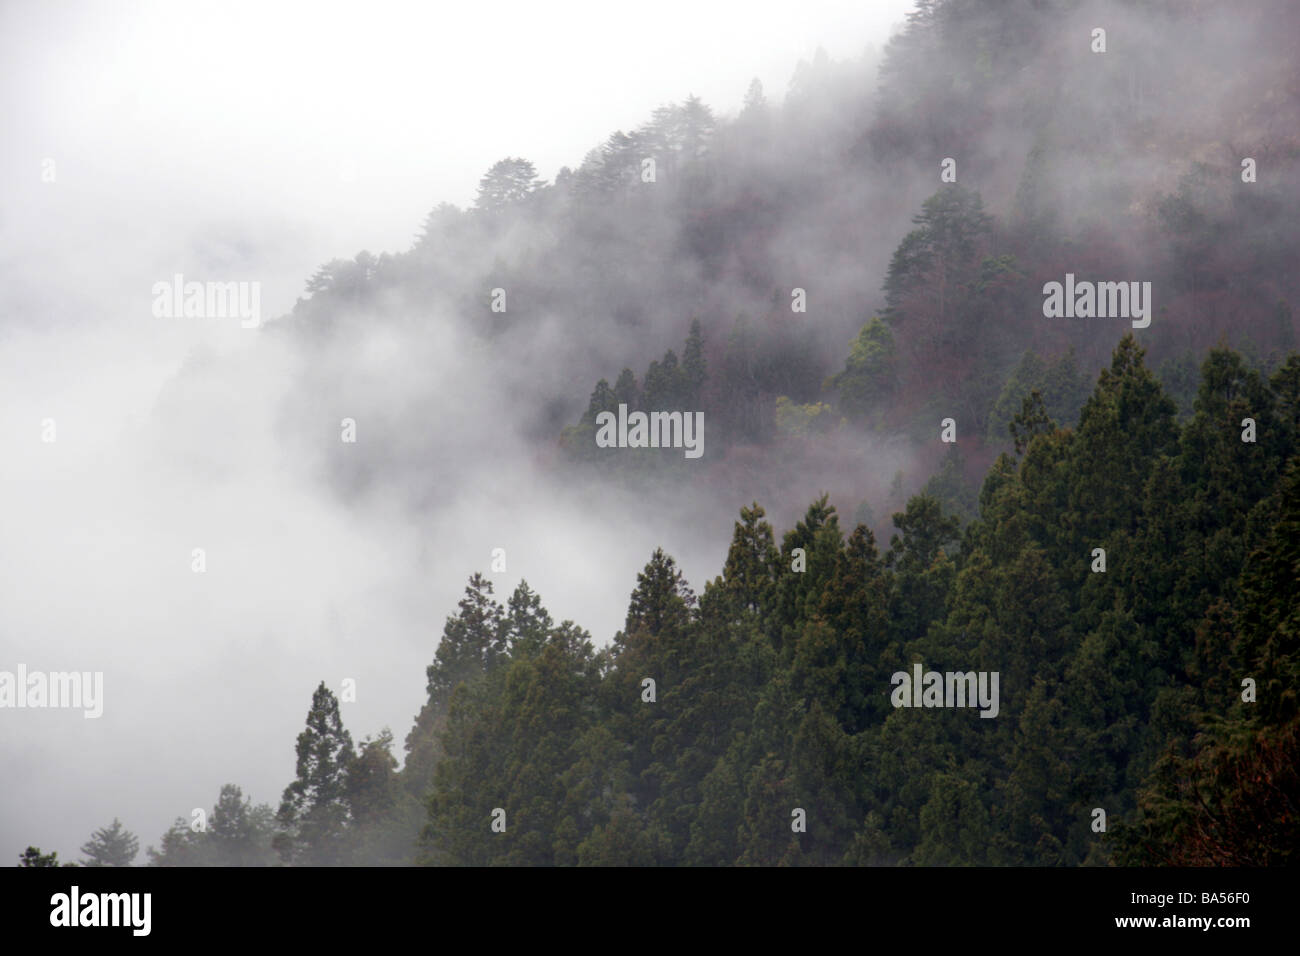 Mist raising through the trees in Iya Vally Japan - Stock Image